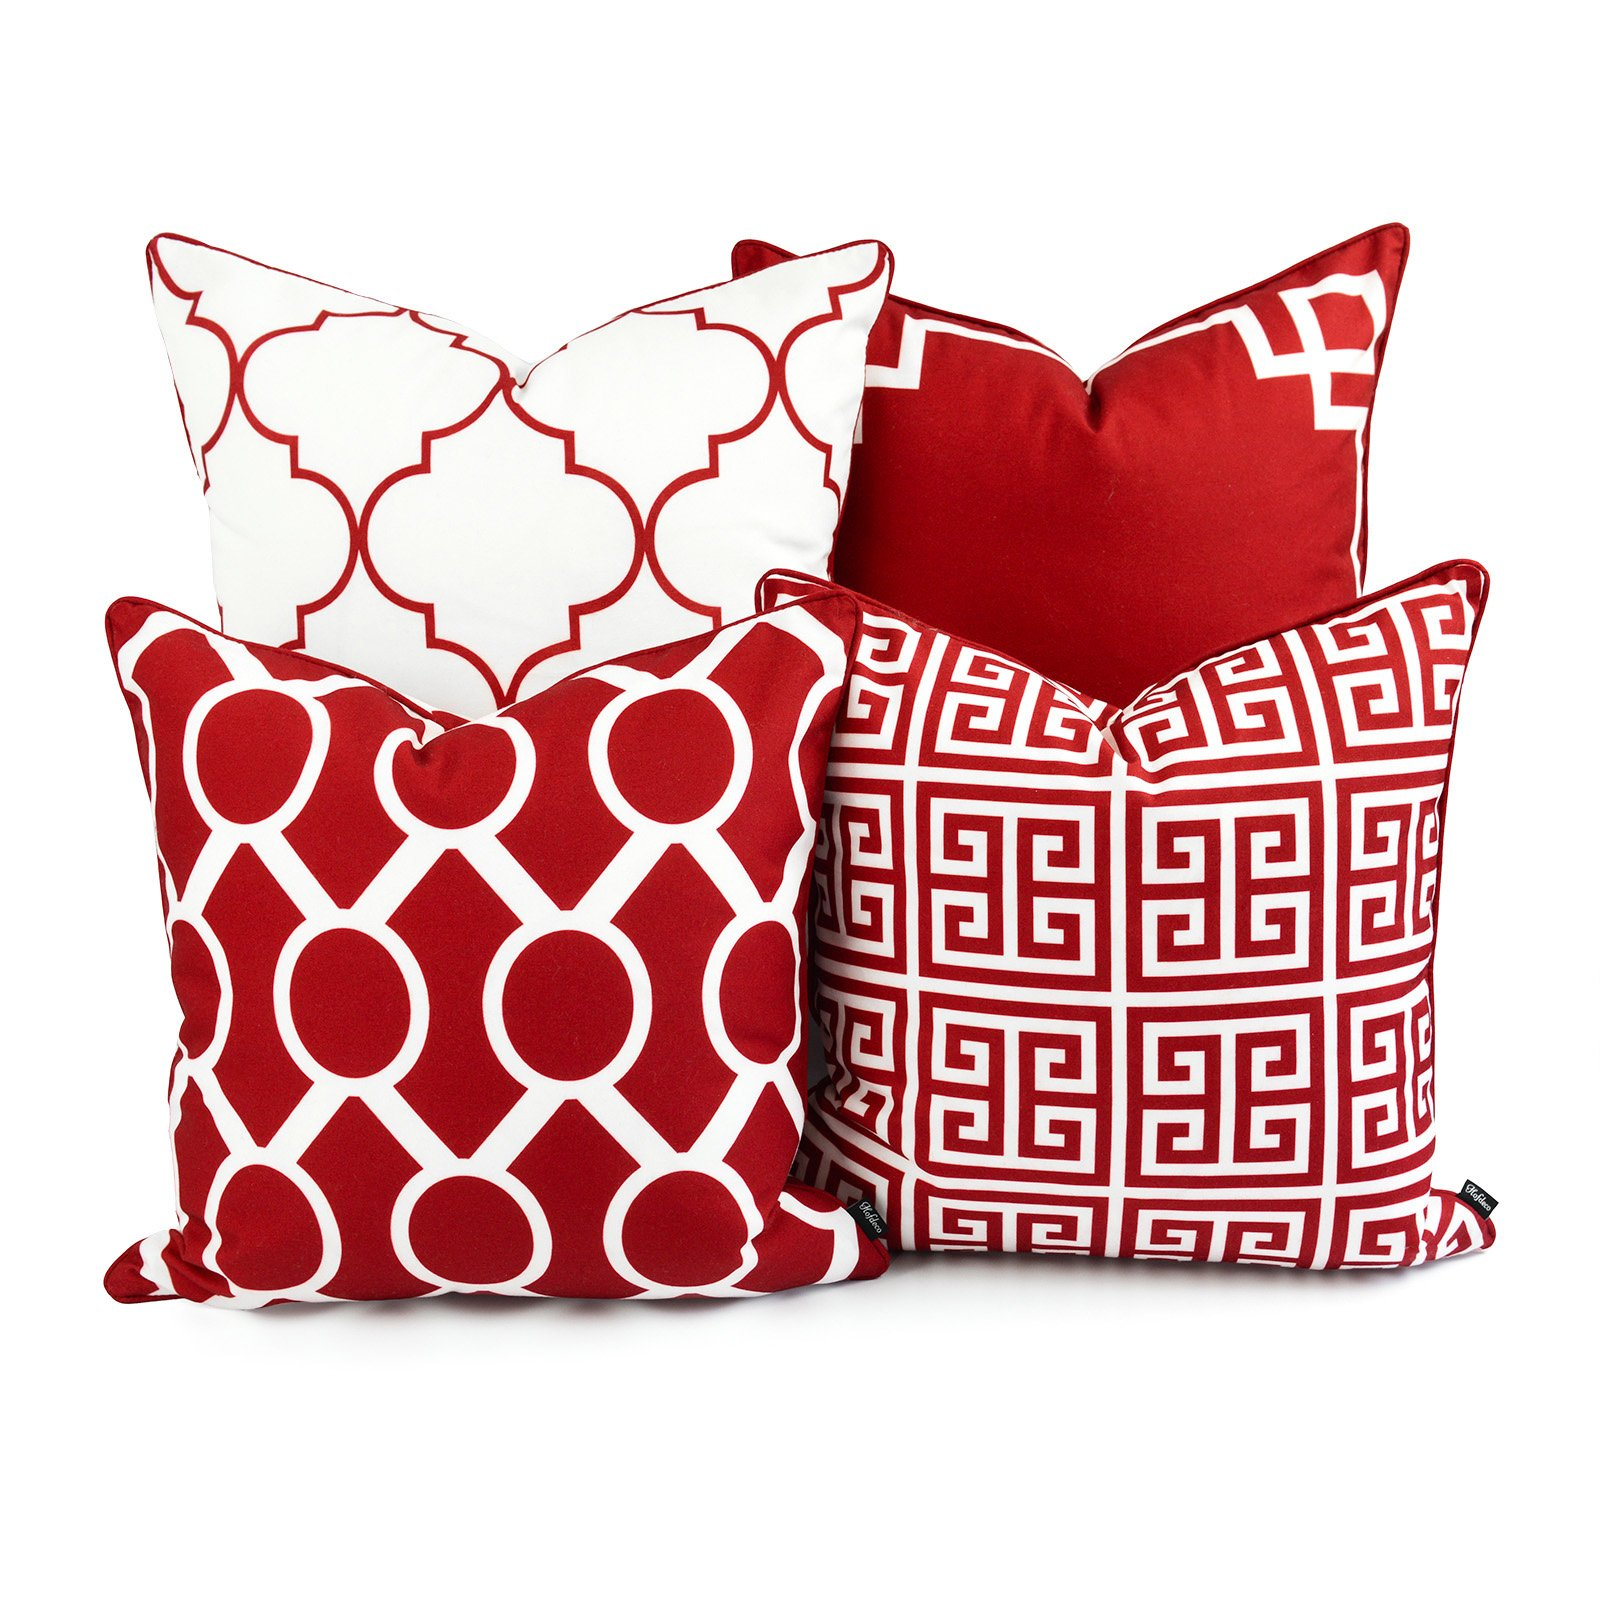 Amazon Com Hofdeco Valentine Indoor Outdoor Pillow Cover Only Water Resistant For Patio Lounge Sofa Red White Greek Key Moroccan Chain 18 X18 20 X20 Set Of 4 Home Kitchen